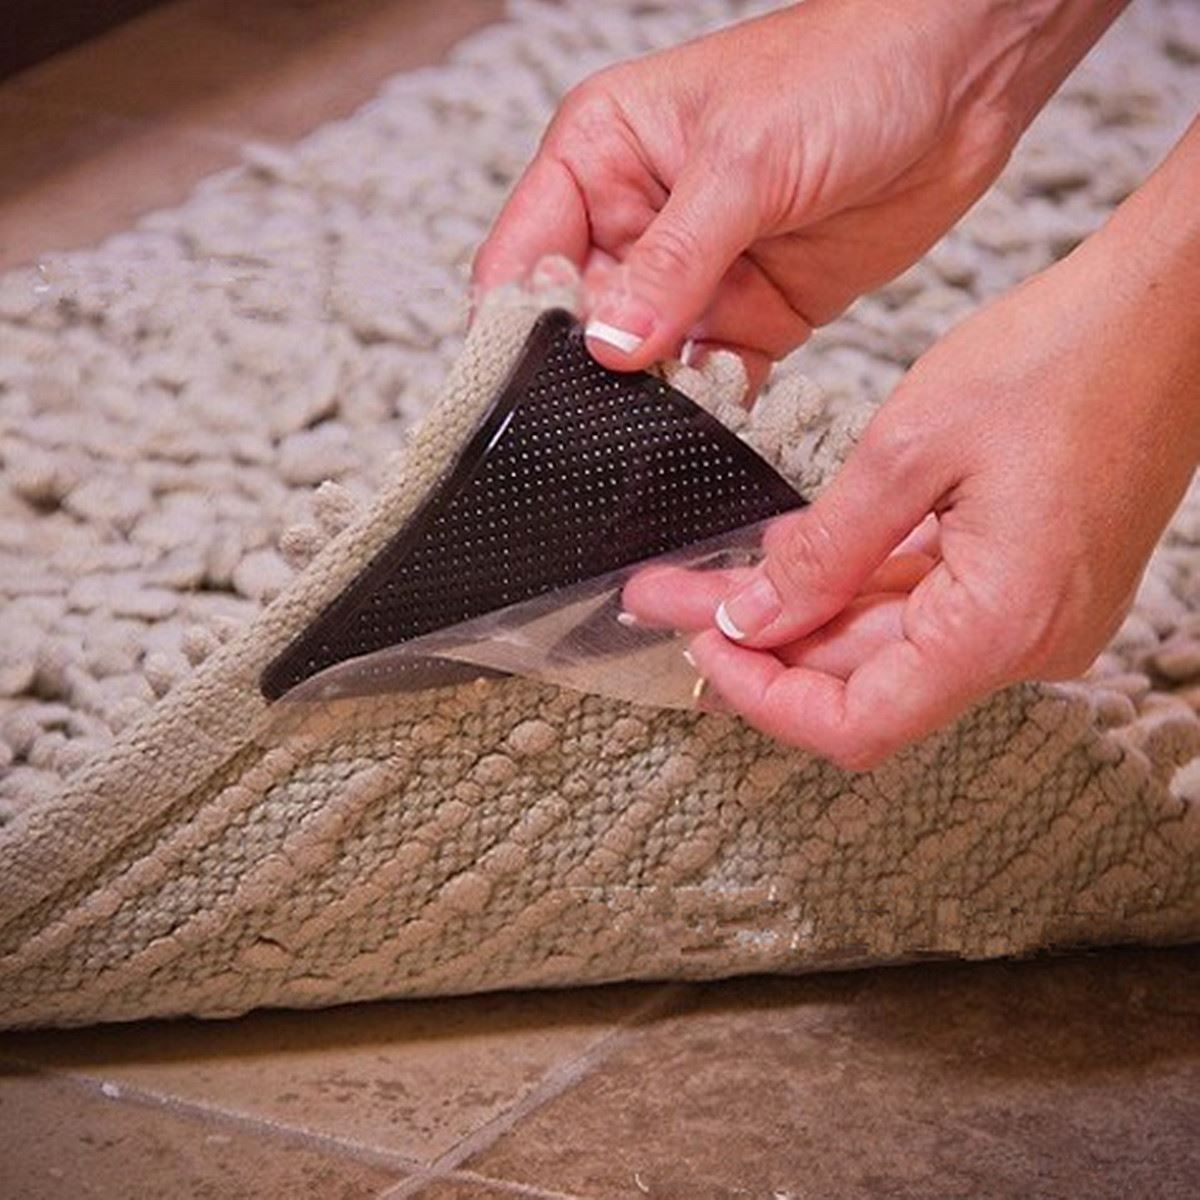 Captivating ... Non Slip Safety Rug To Carpet Gripper Pad Vidalondon ...